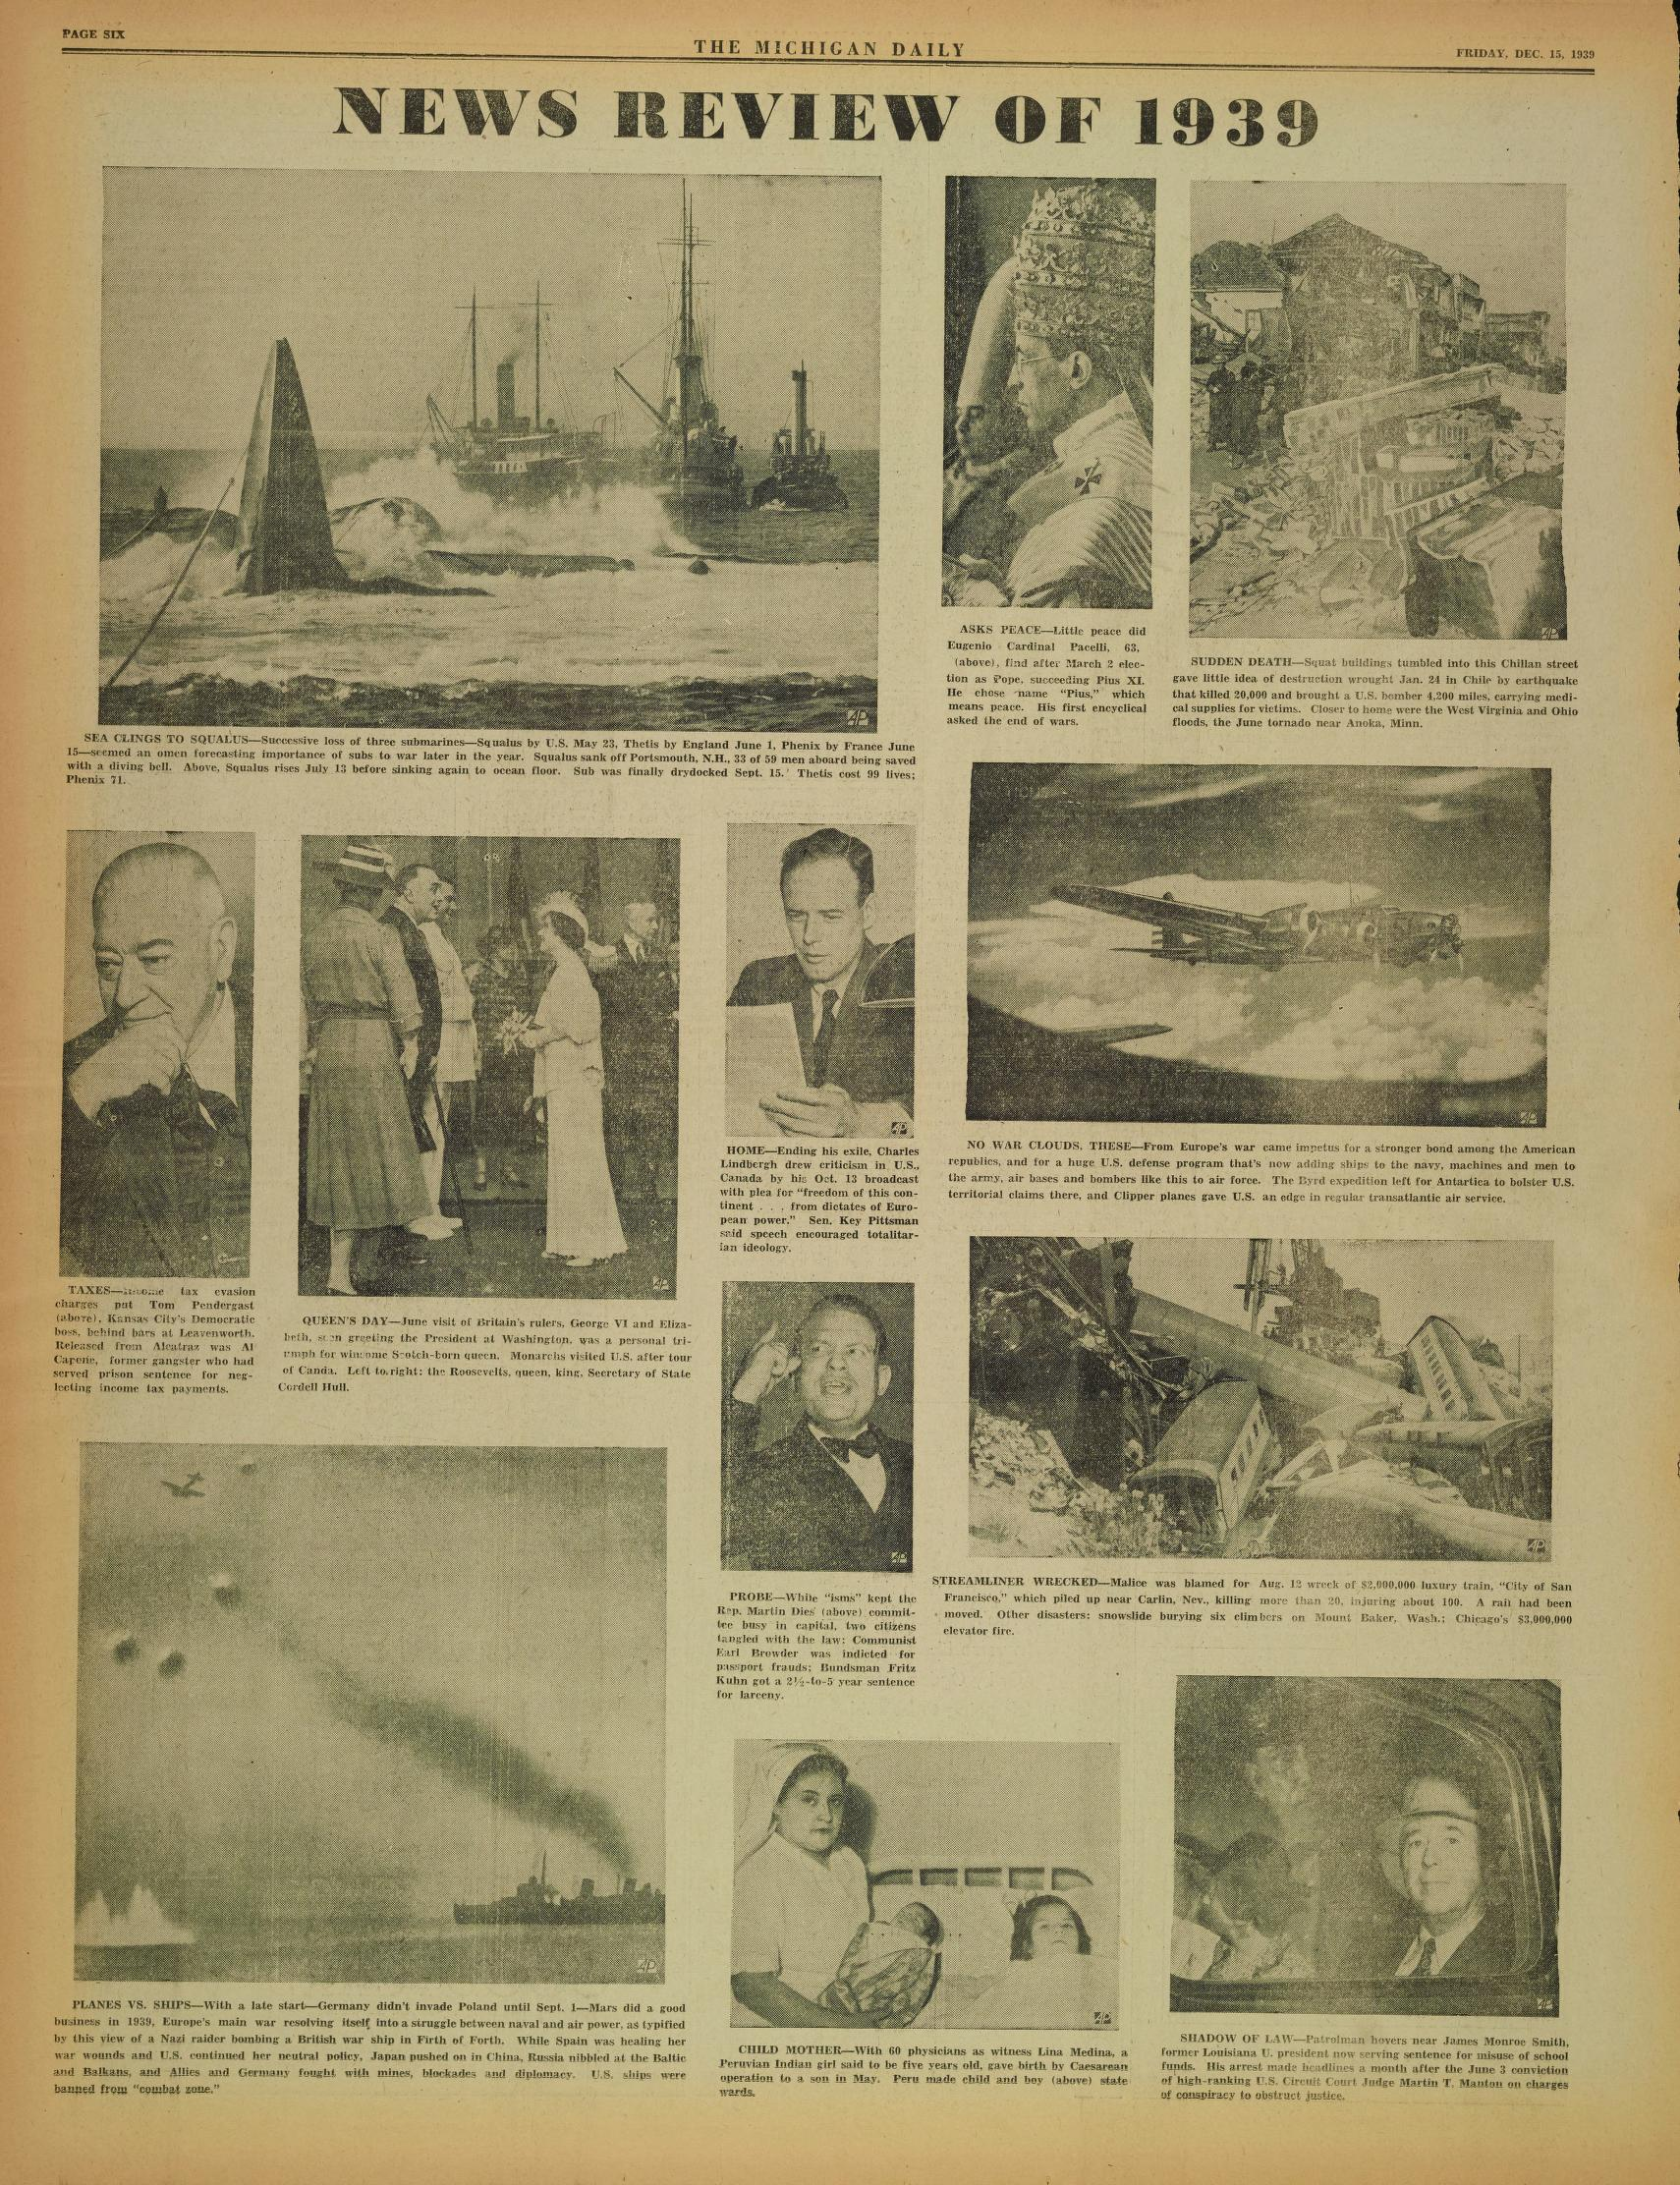 Michigan Daily Digital Archives - December 15, 1939 (vol  50, iss